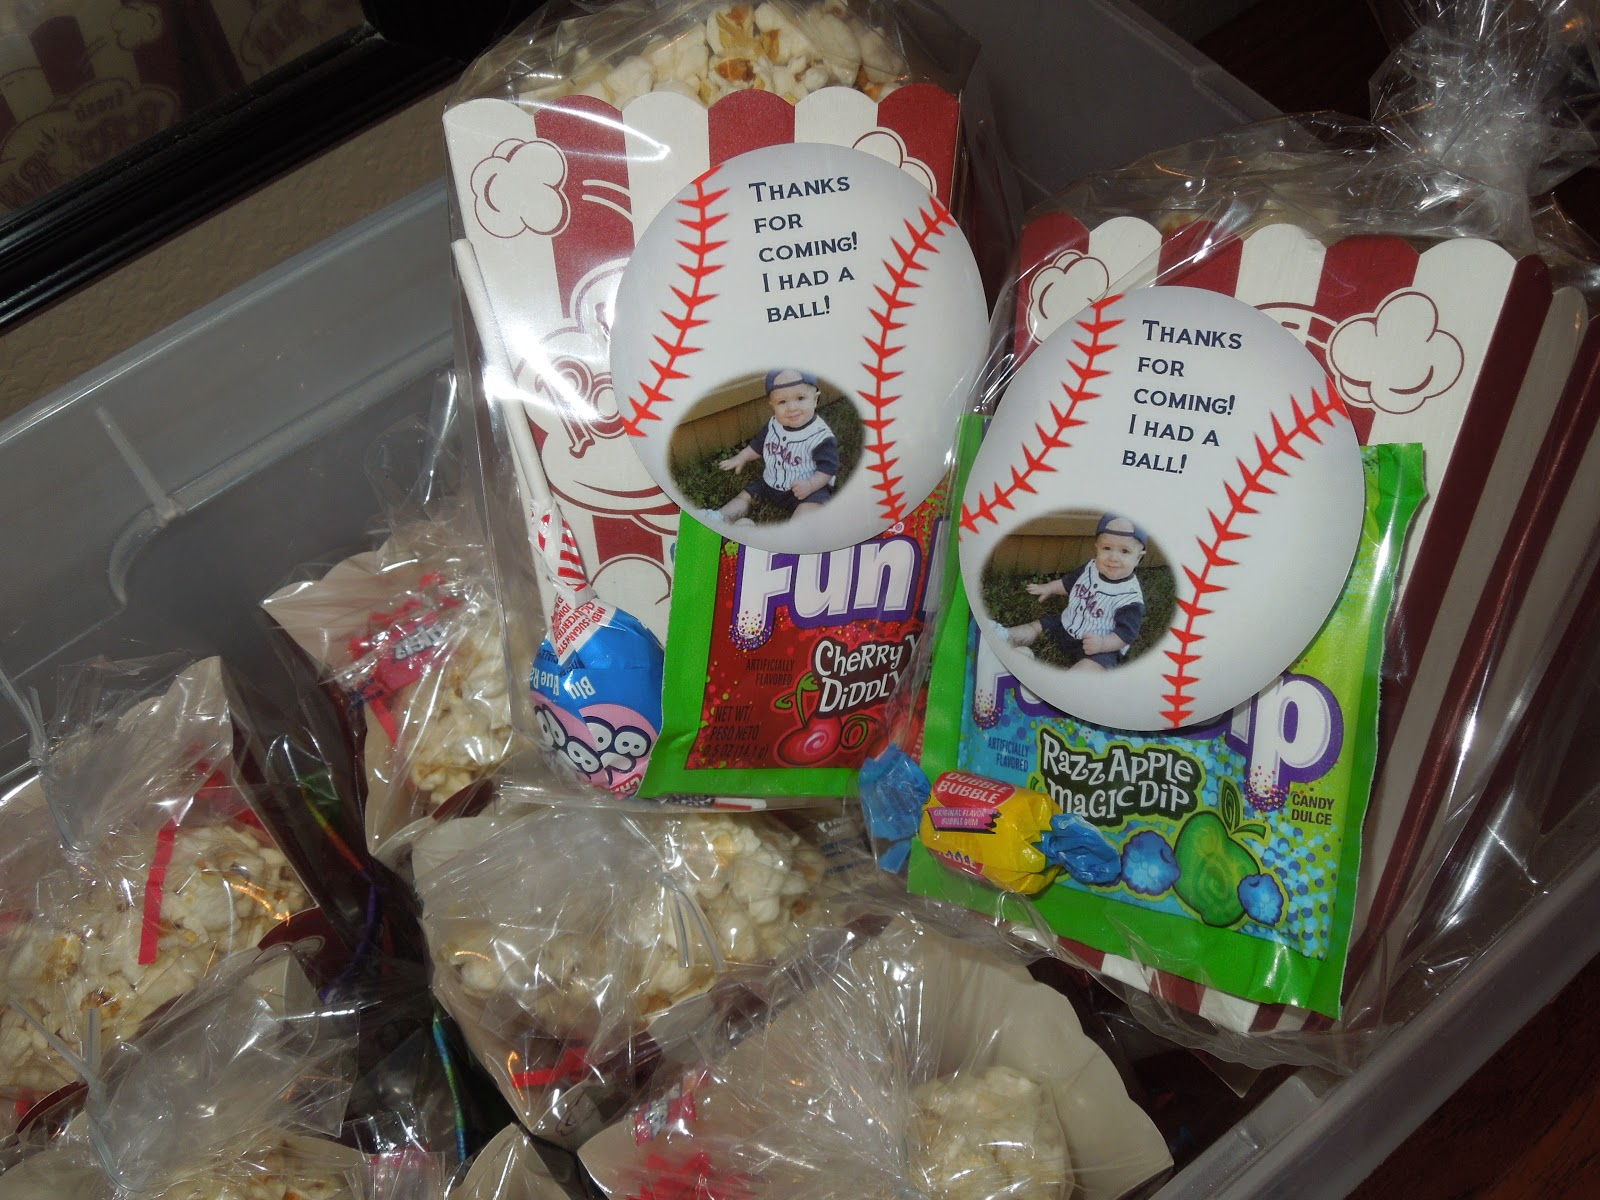 Party Favors Popcorn Fun Dip Twizzlers Double Bubble Gum And A Blow Pop All My Candy Concession Memories Of Being At The Ballpark Watching Brother